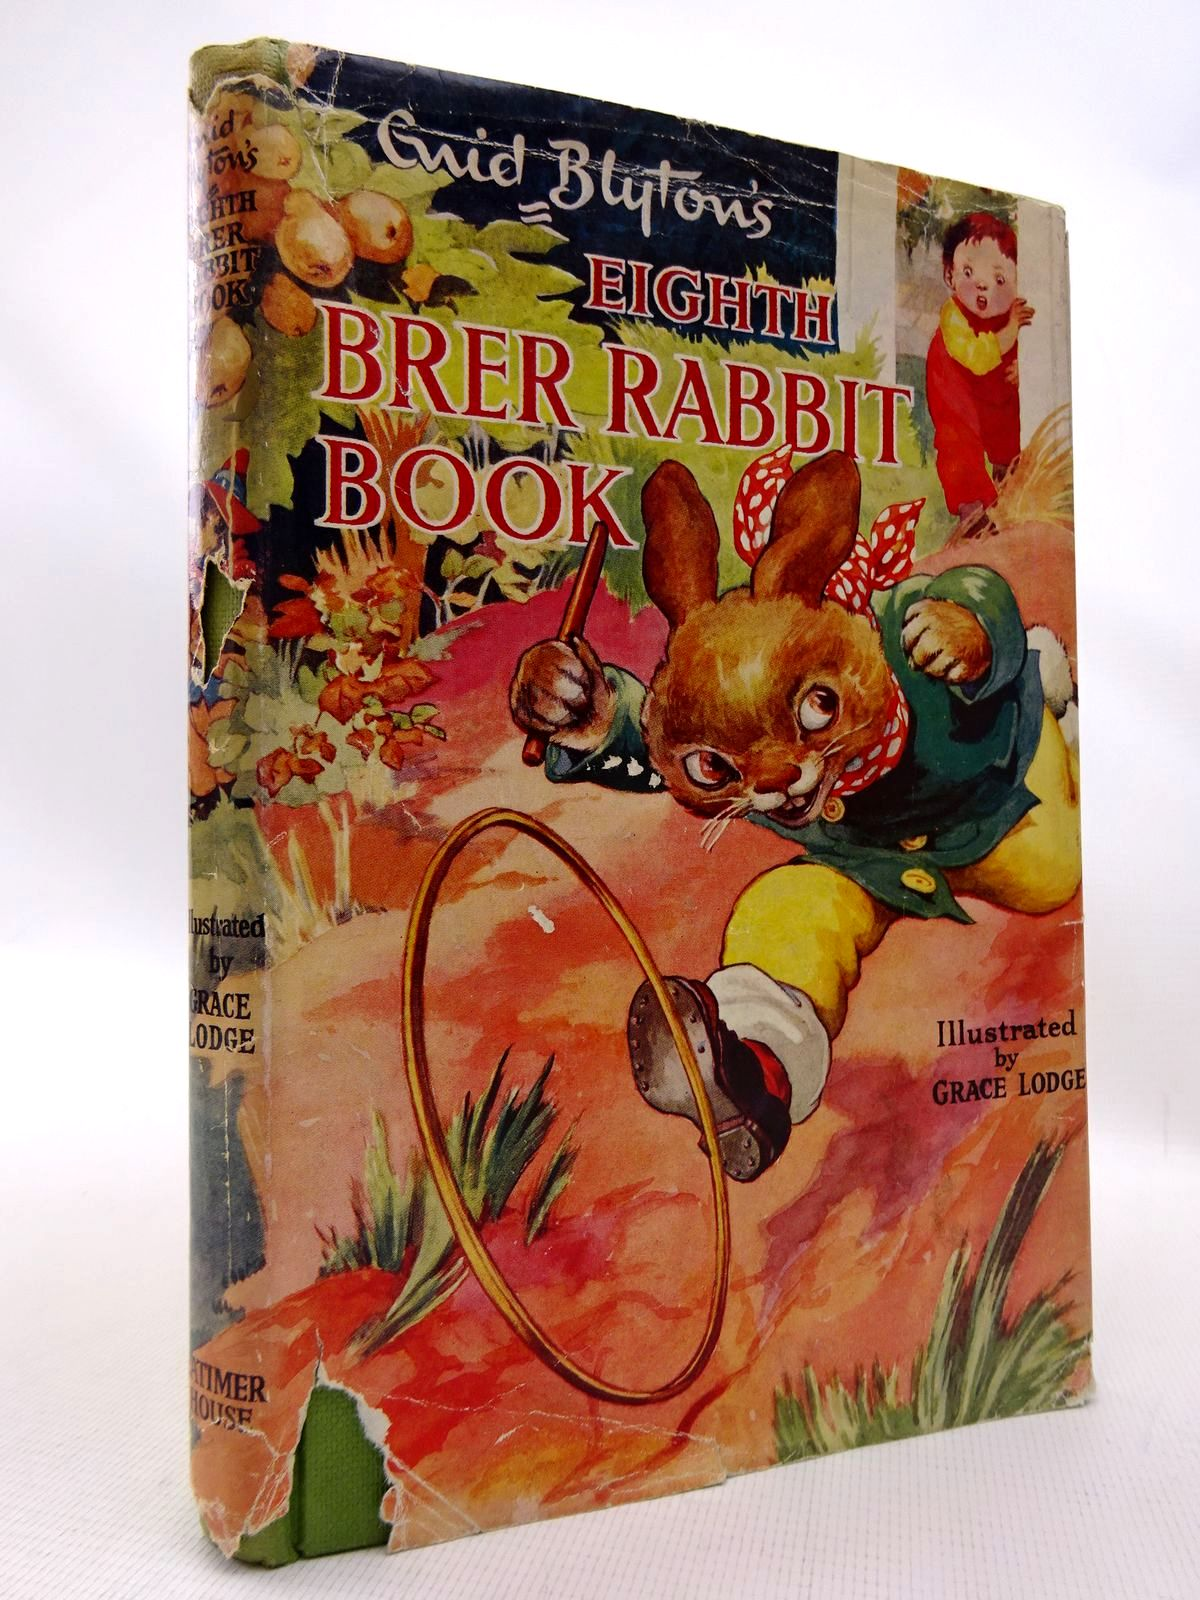 Photo of ENID BLYTON'S EIGHTH BRER RABBIT BOOK written by Blyton, Enid illustrated by Lodge, Grace published by Latimer House Limited (STOCK CODE: 1815820)  for sale by Stella & Rose's Books